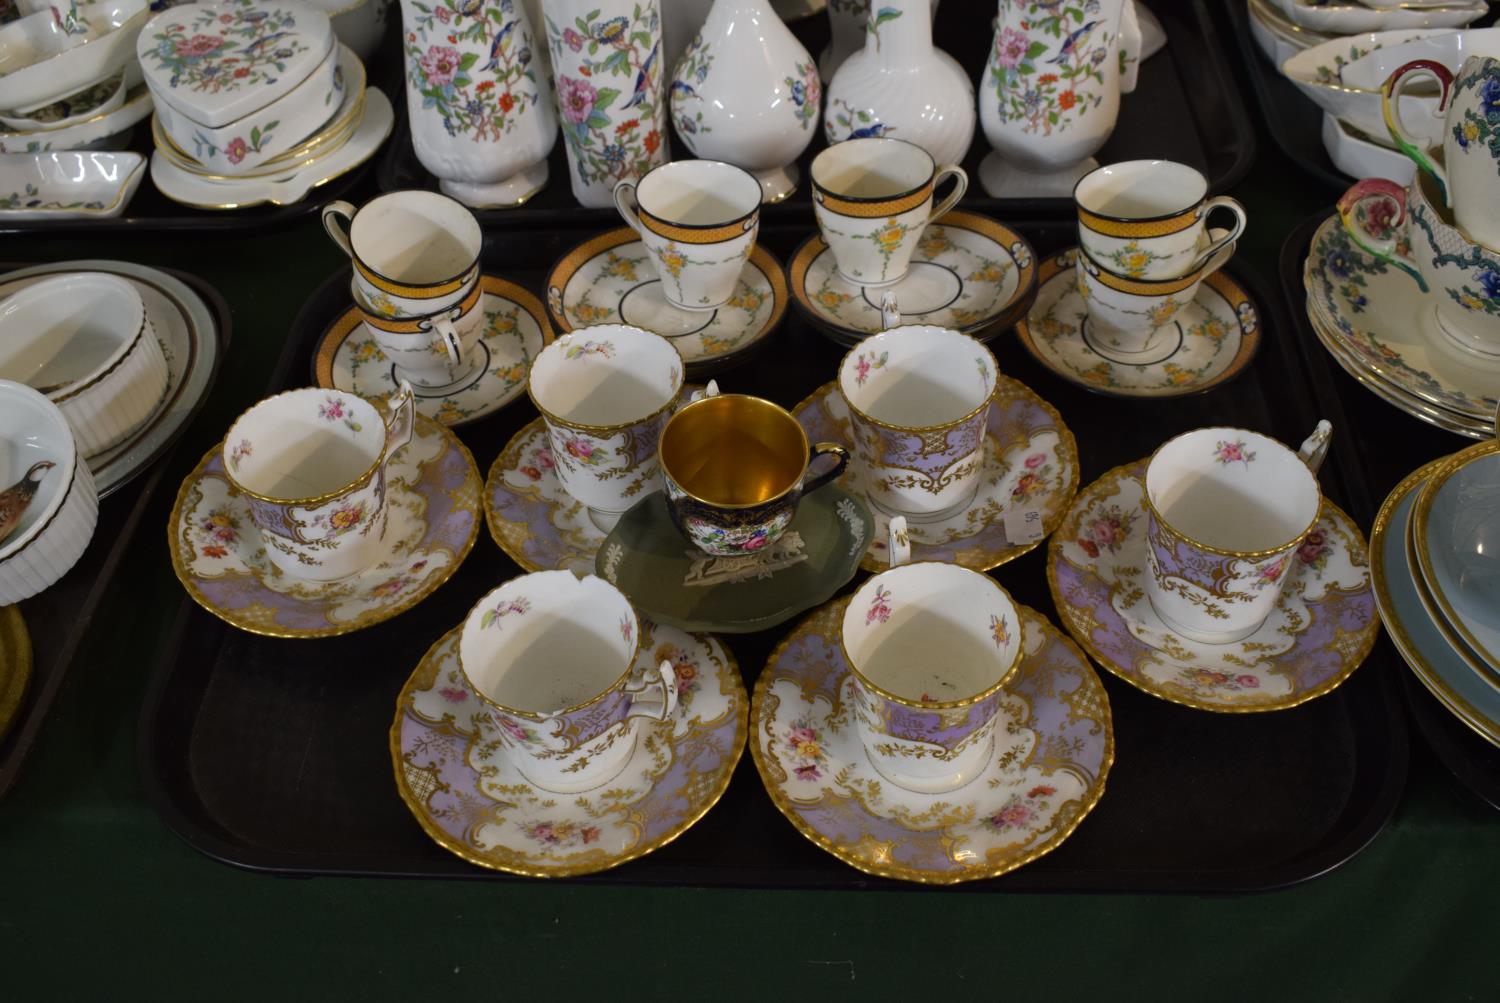 Lot 210 - A Tray Containing a Collection of Coalport Mauve Batwing Coffee Cans and Saucers (One Can AF)